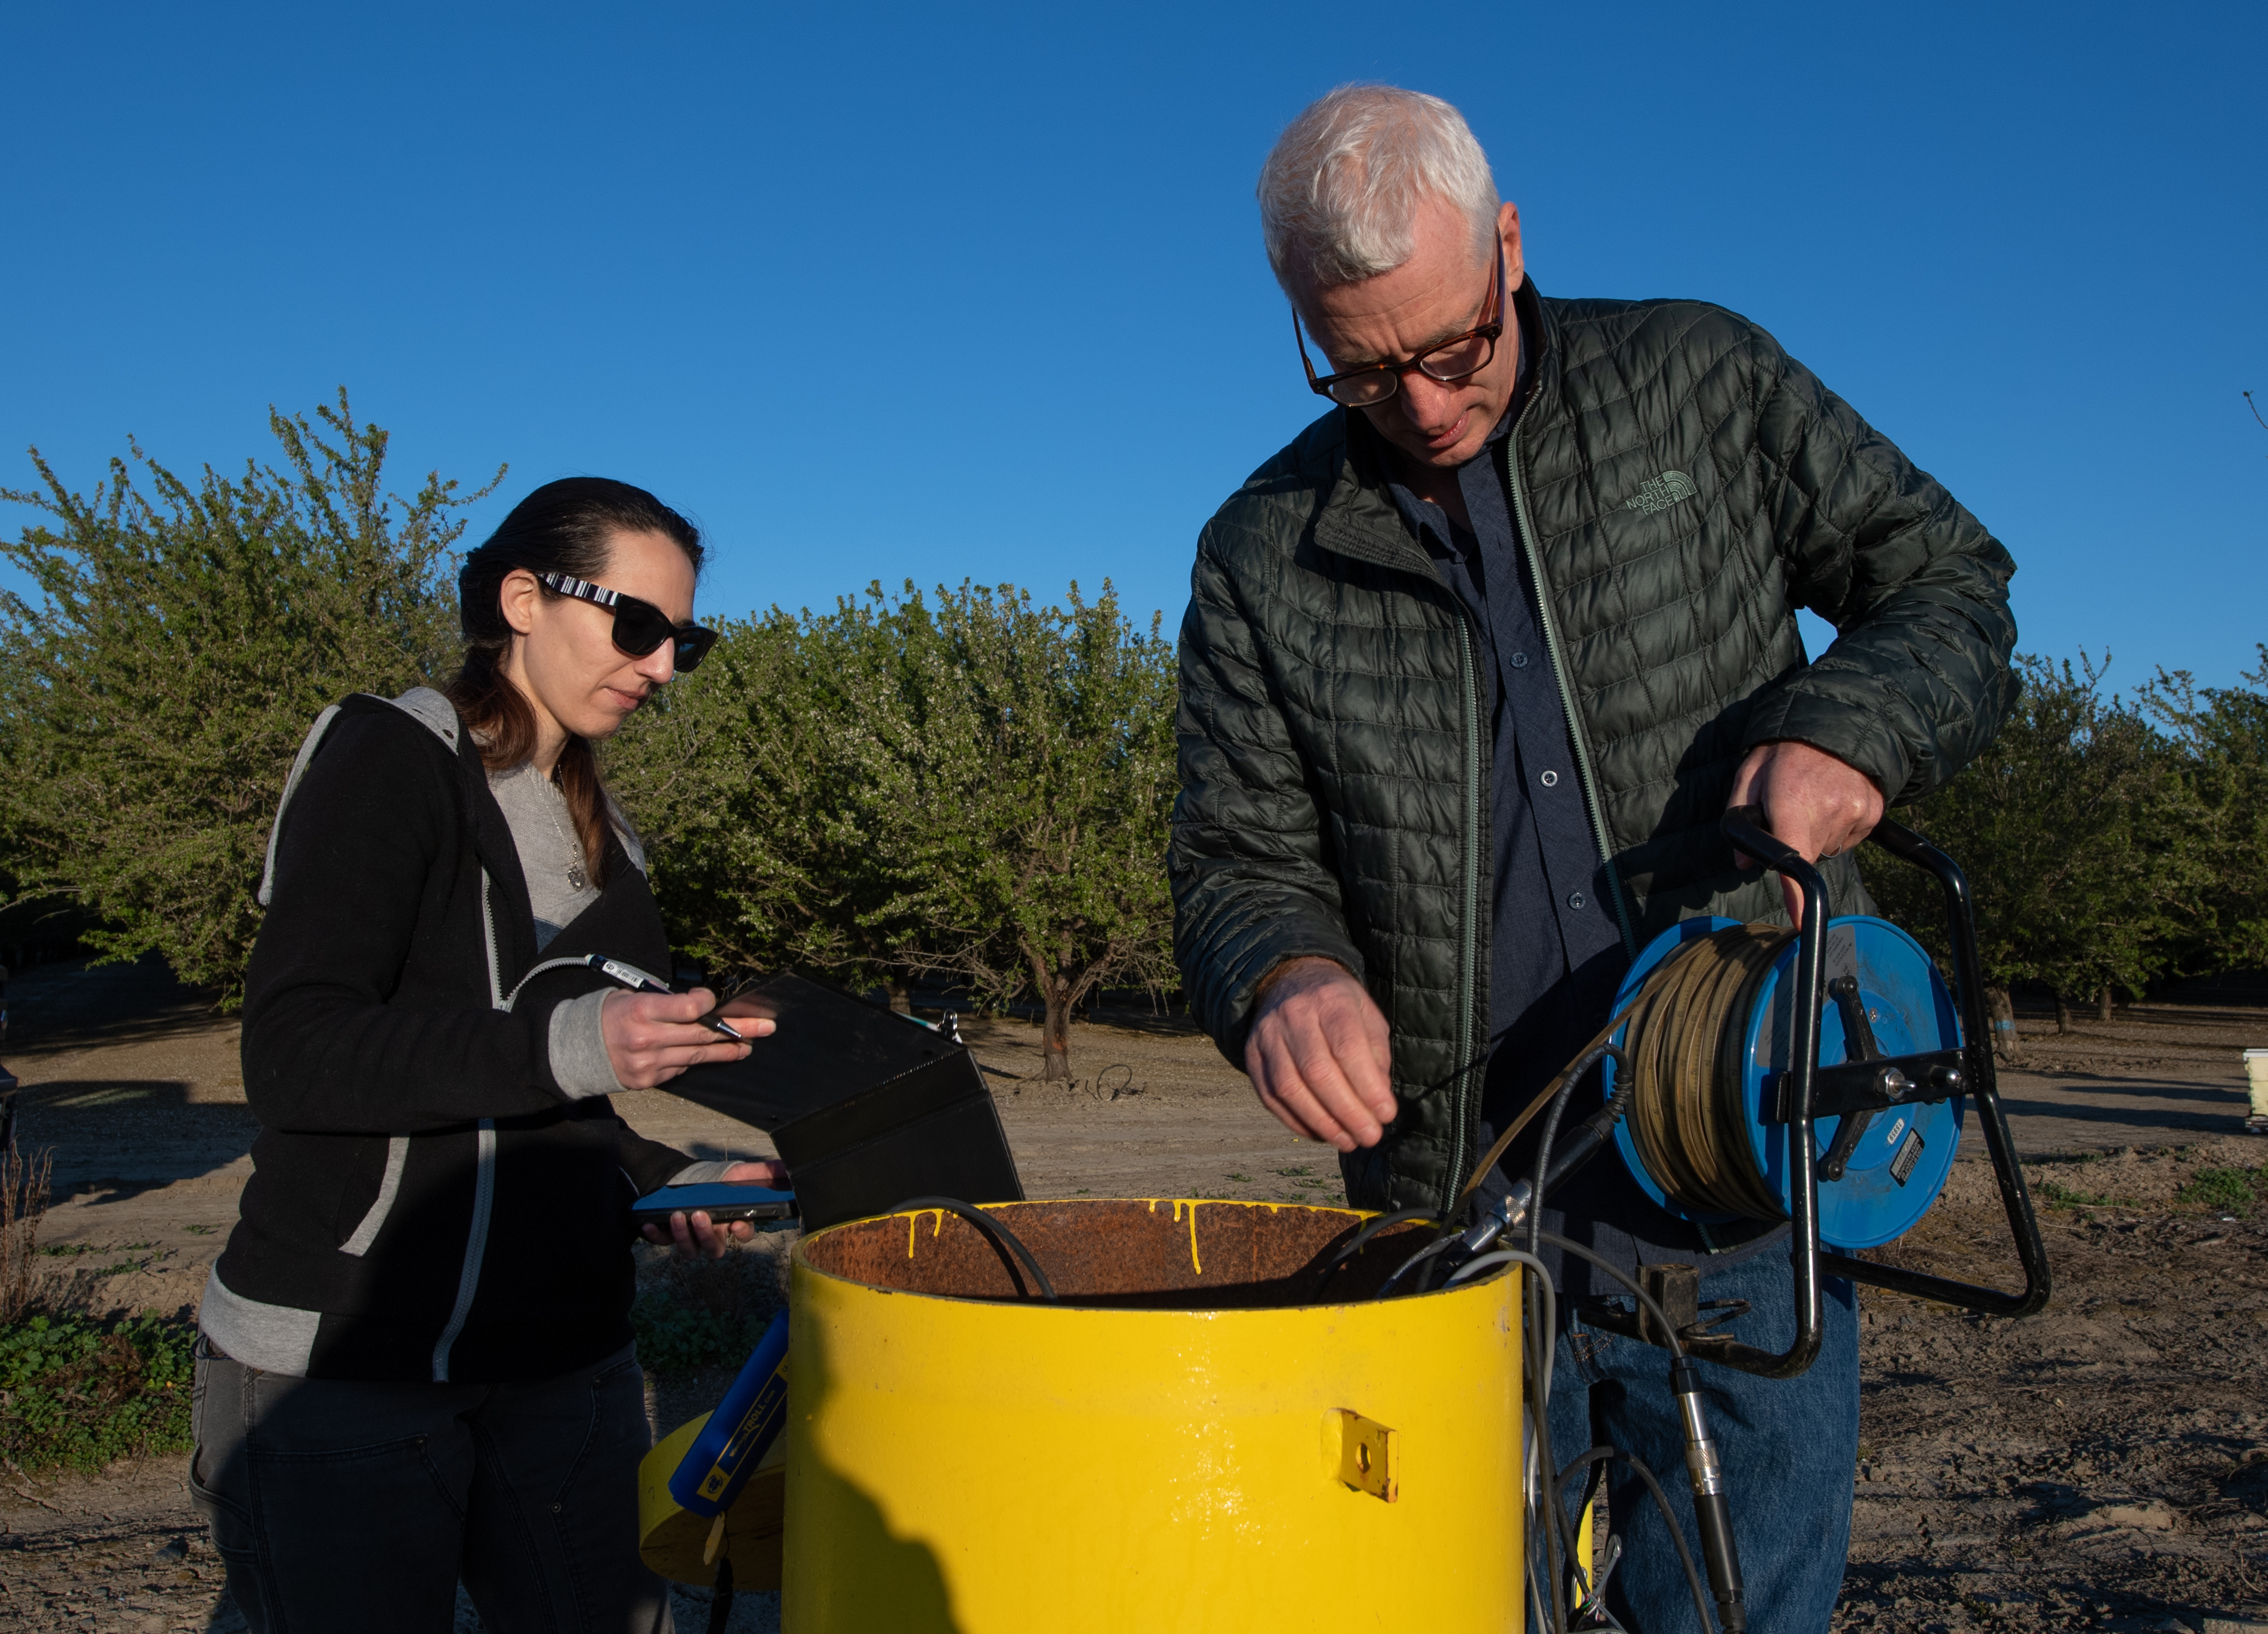 Department of Water Resources engineering geologists Aaron Cuthbertson (right) and Kimberly Bowman measure groundwater levels at a designated monitoring well, one of thousands of wells in California used to generate groundwater level change reports.